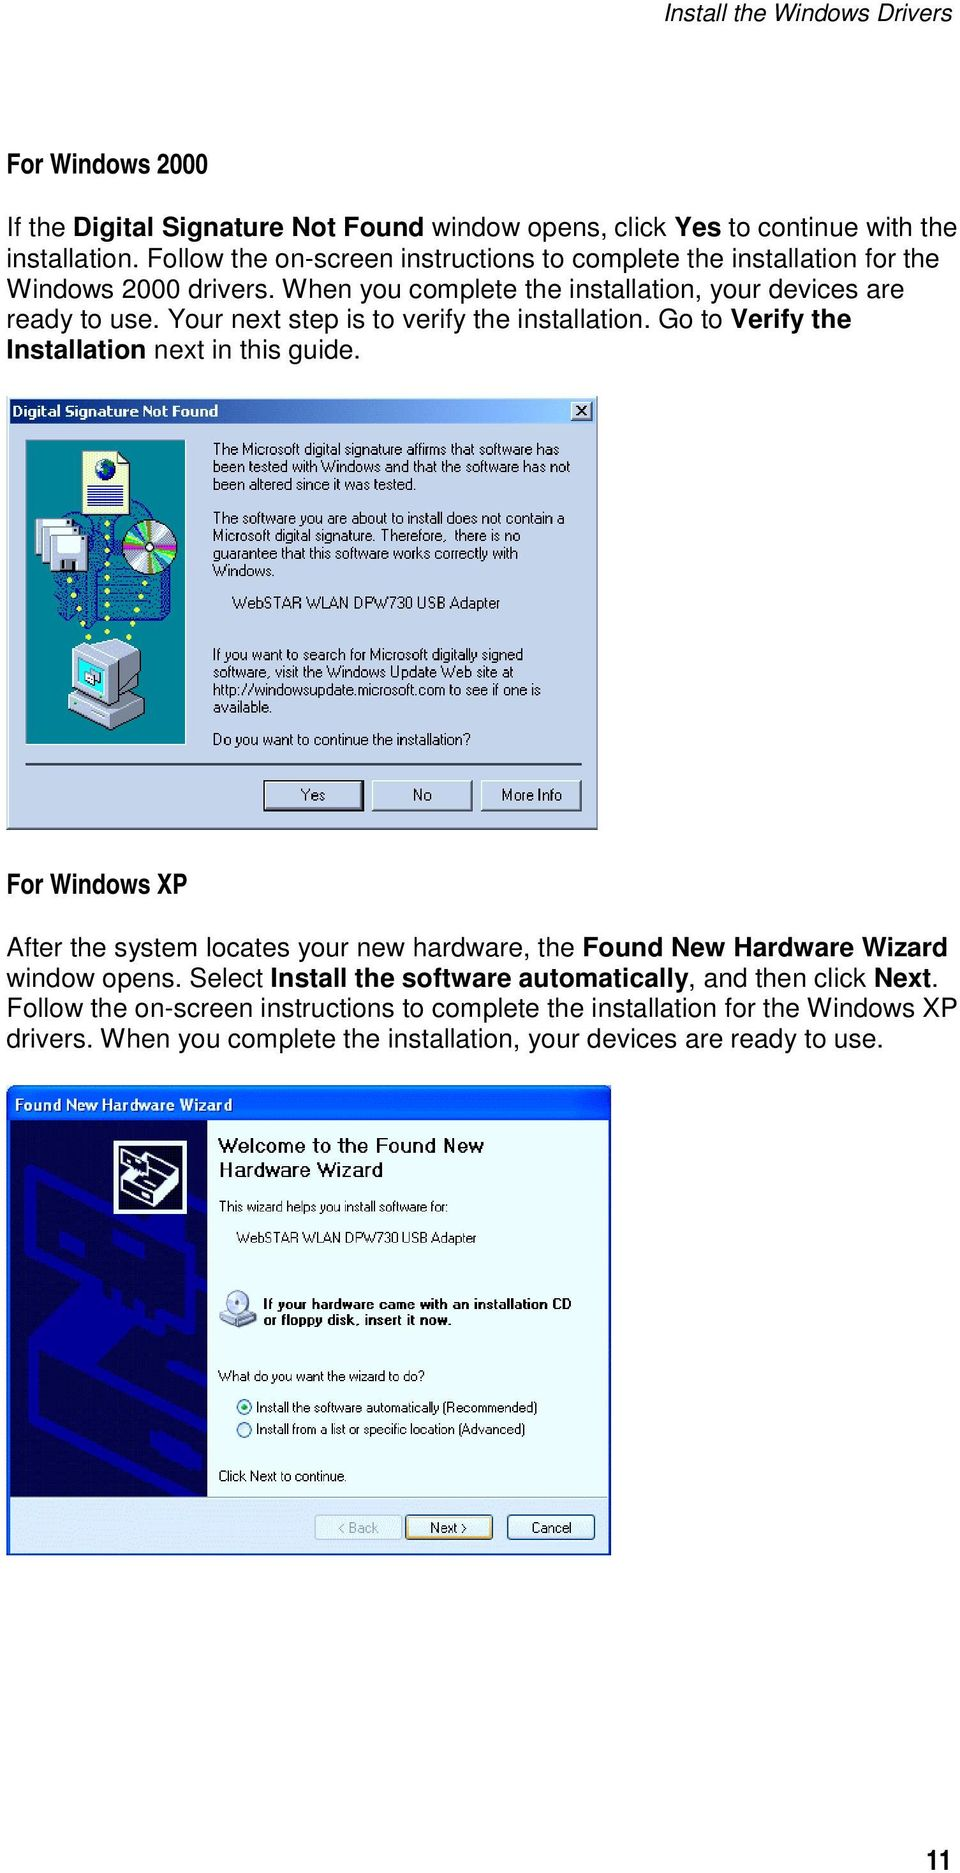 Your next step is to verify the installation. Go to Verify the Installation next in this guide.